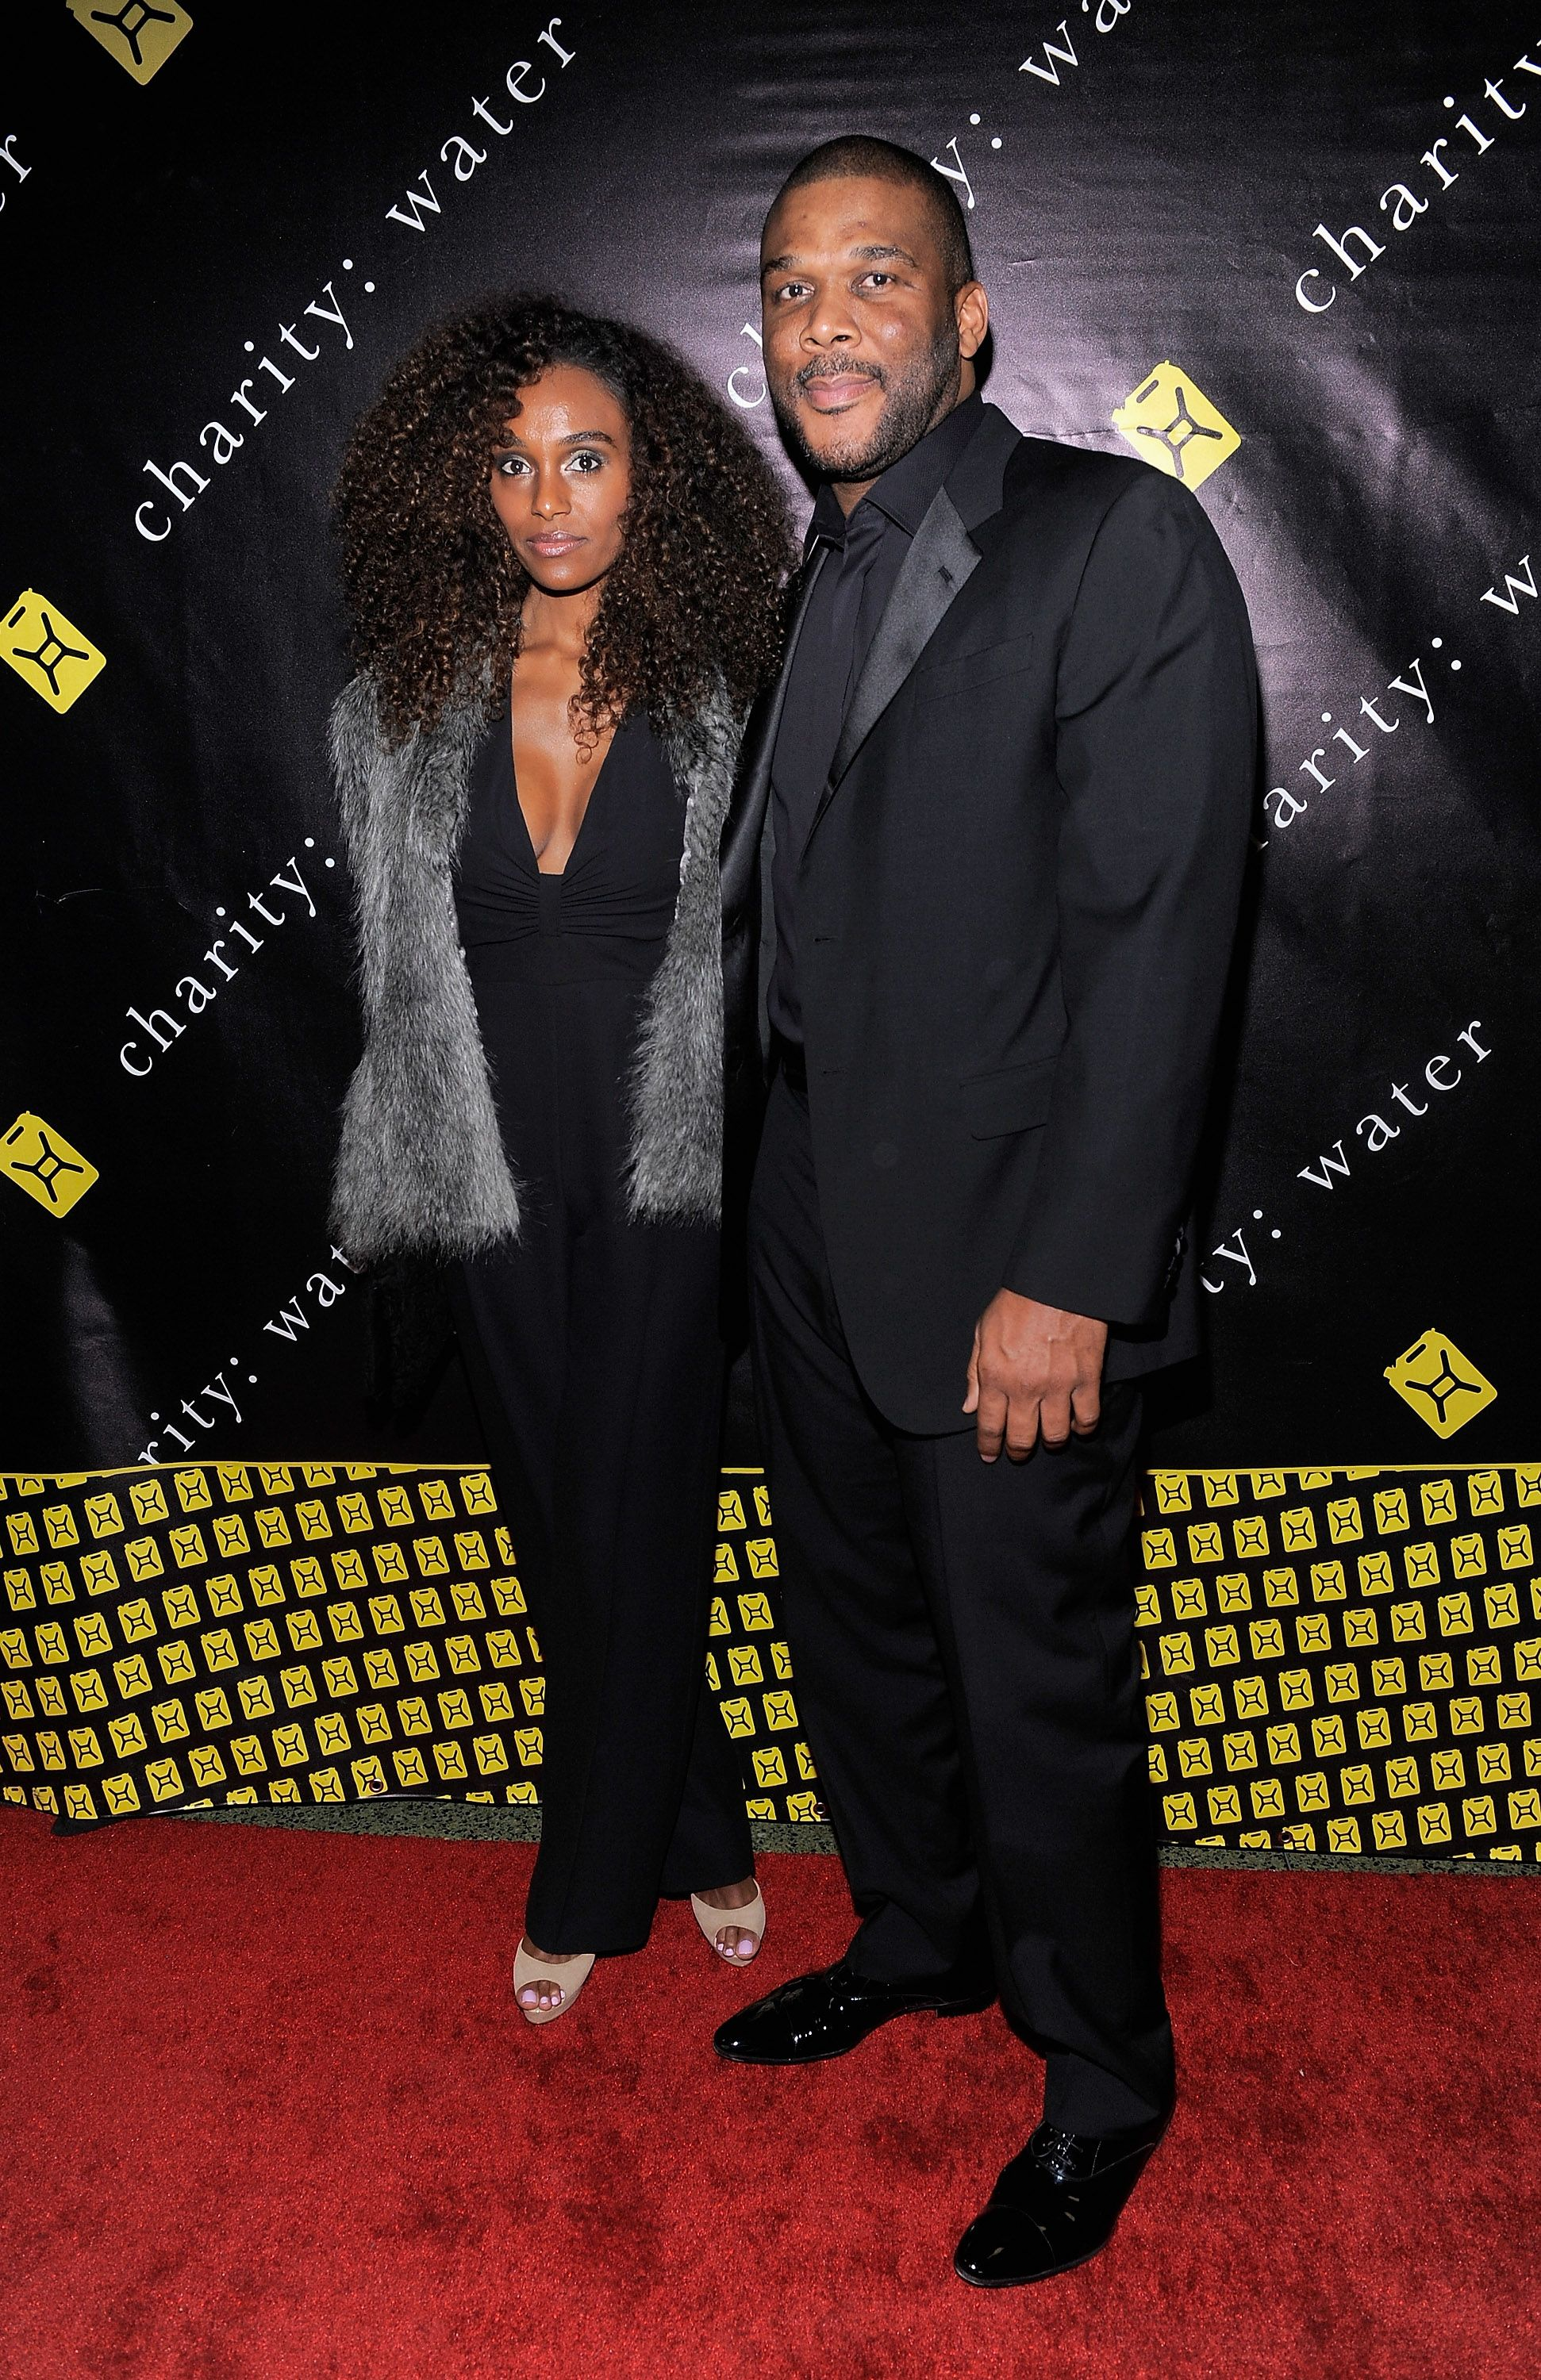 Gelila Bekele and writer/director Tyler Perry at the 6th Annual Charity Ball in 2011 in New York City | Source; Getty Images